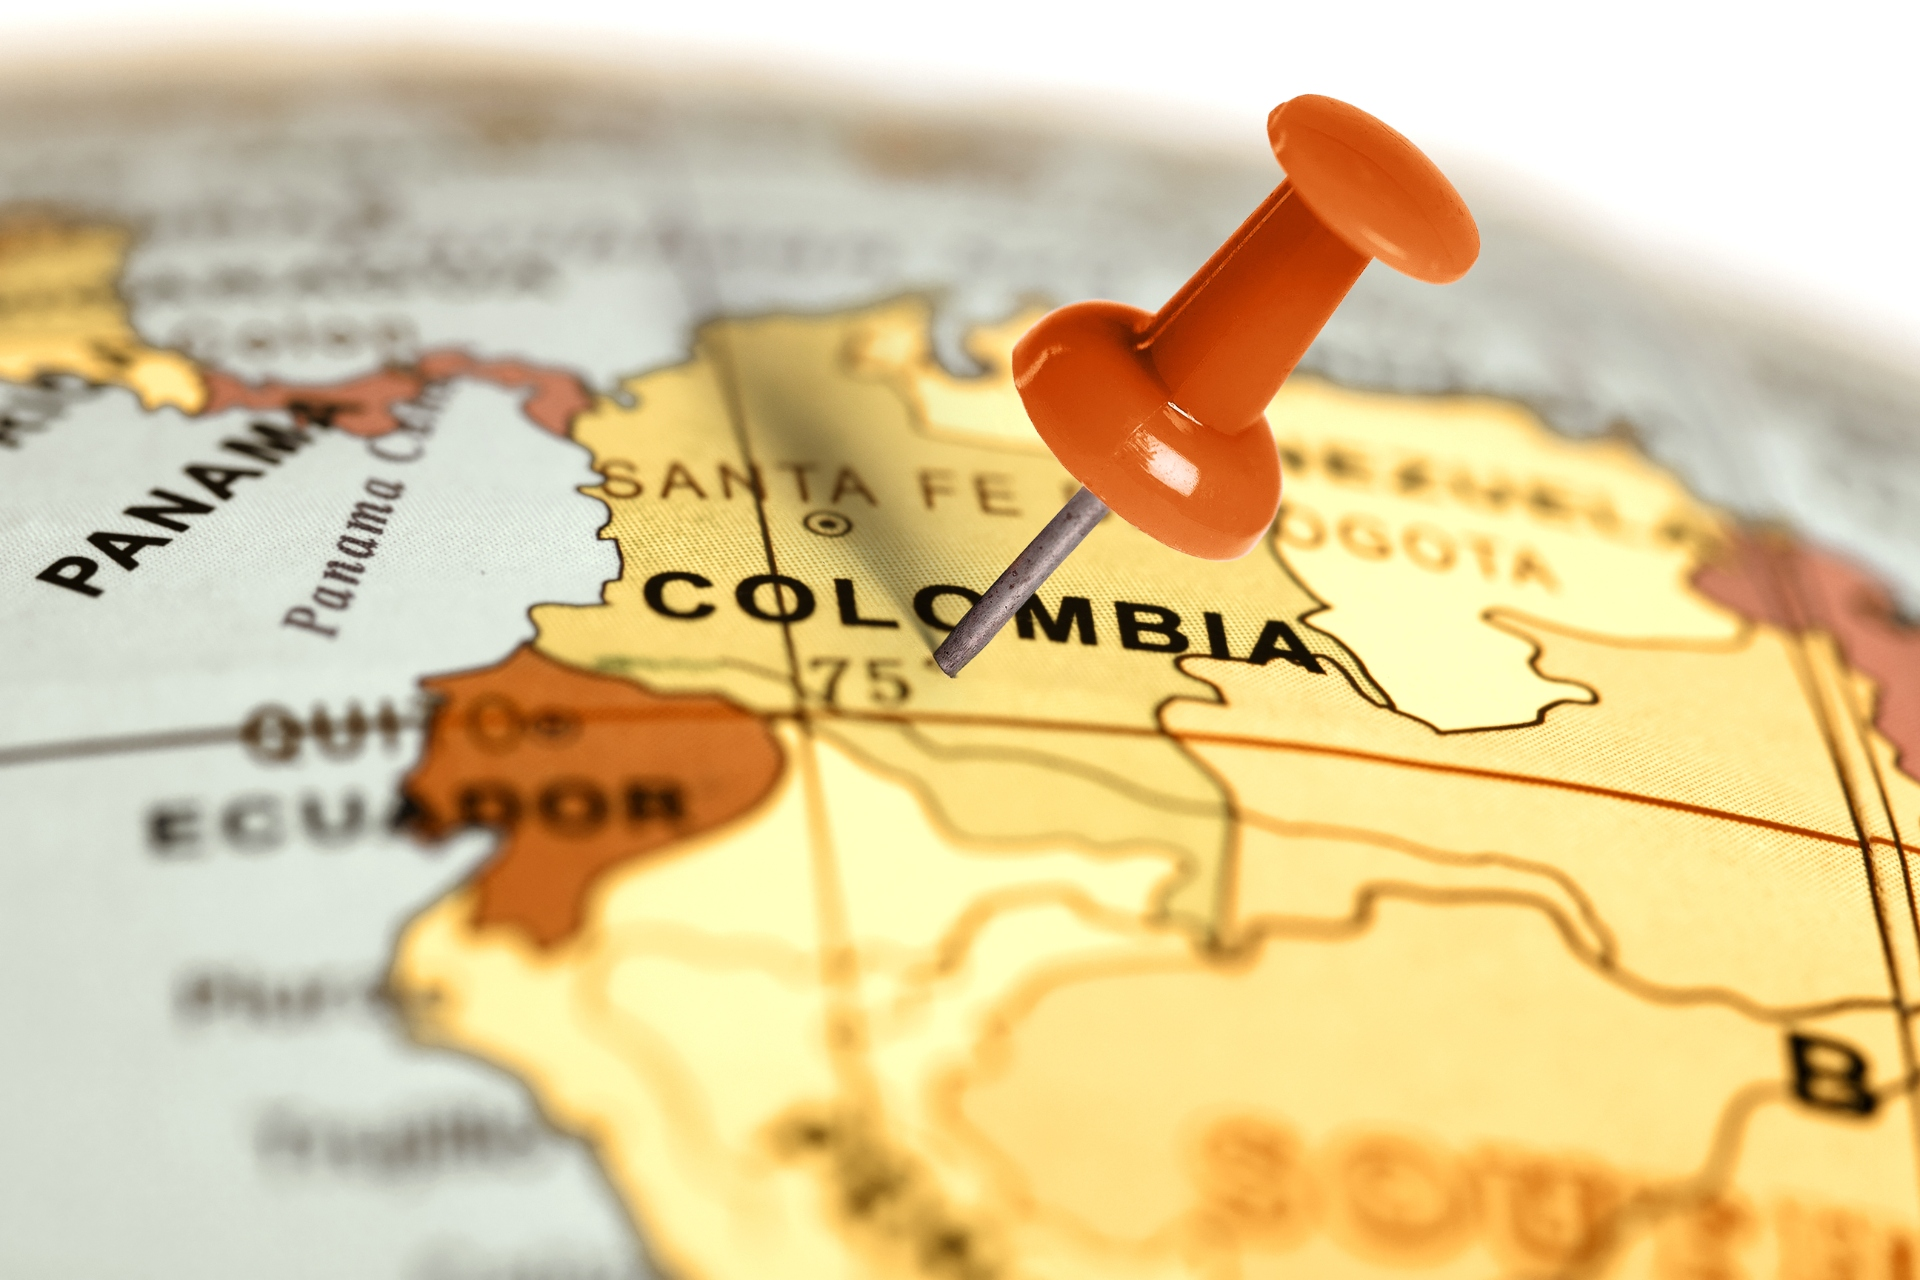 Surrogacy in Colombia: What You Should Learn (Costs, Rights, and More)